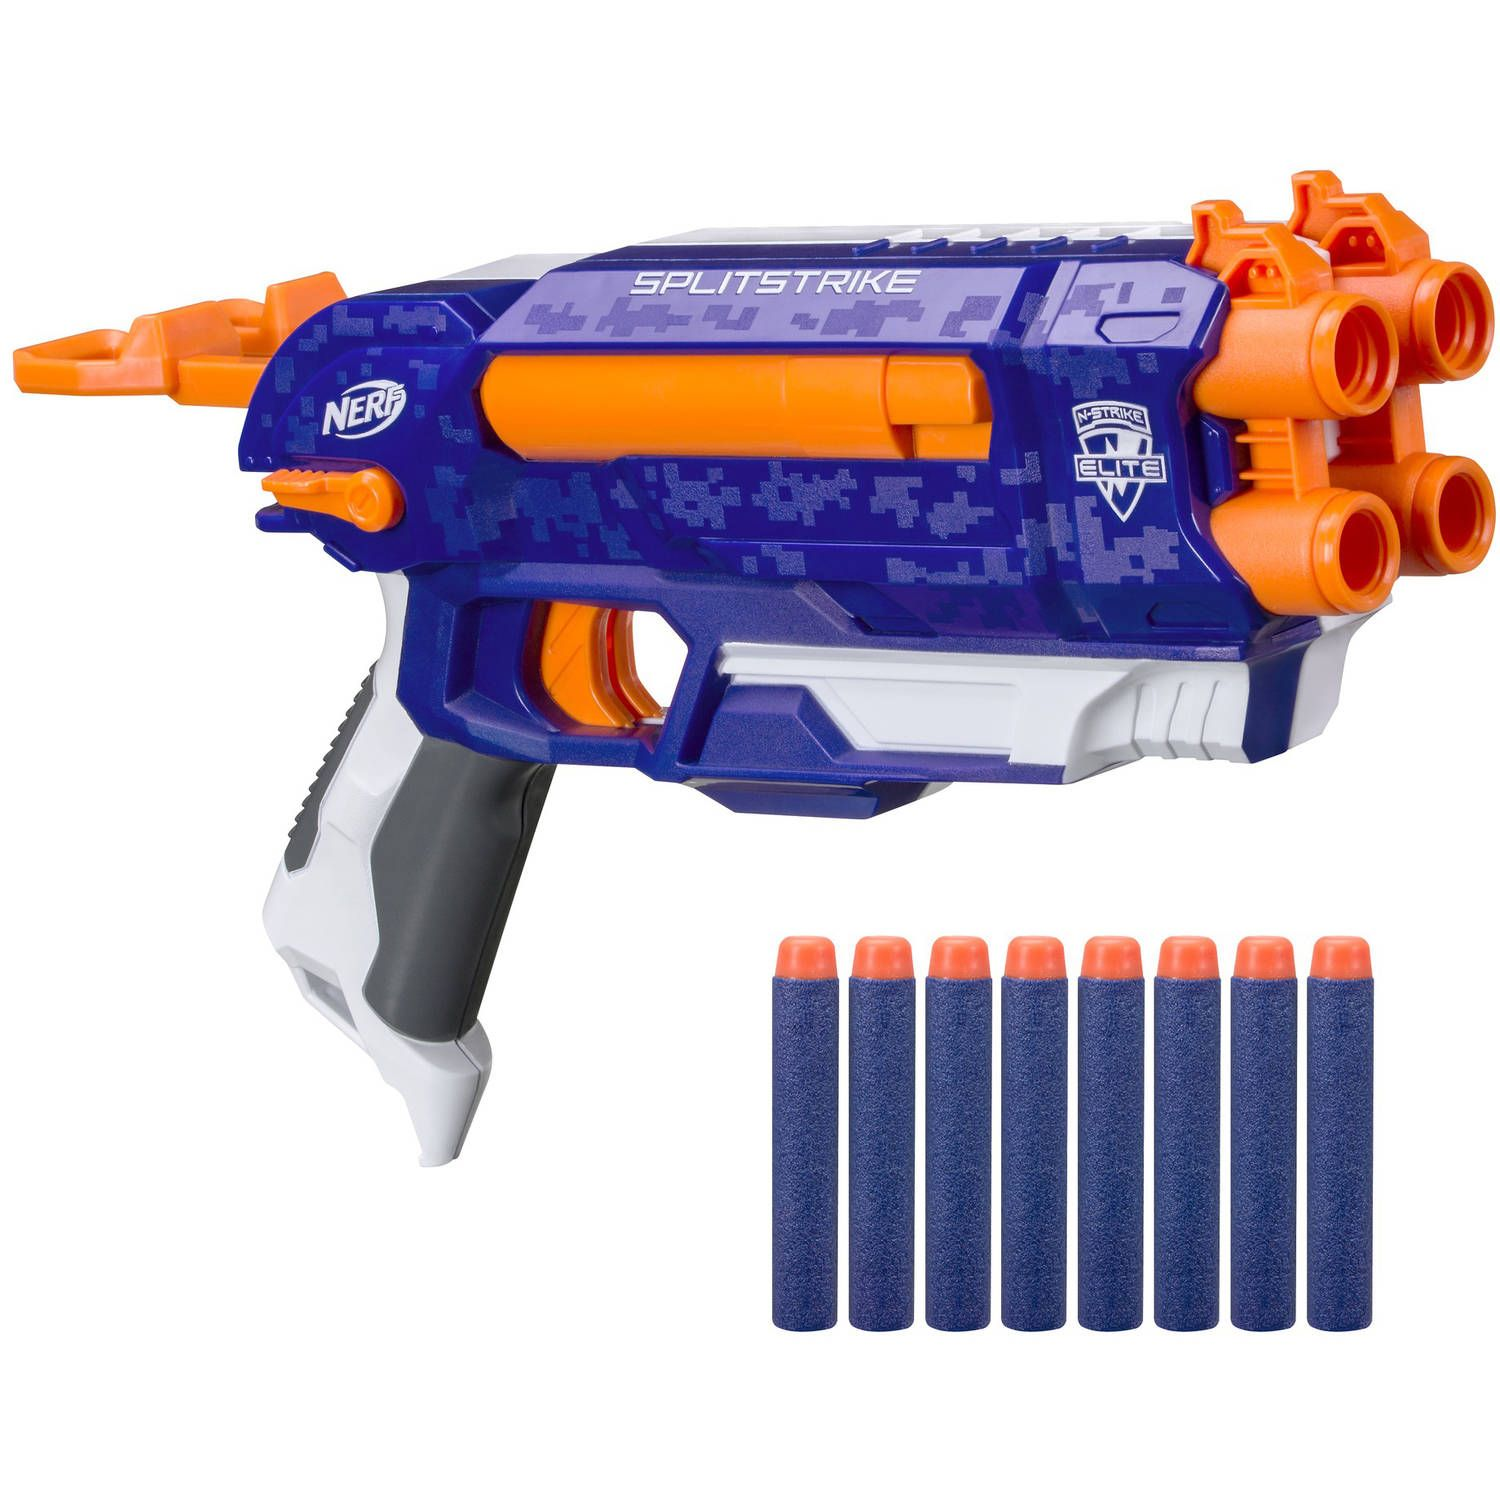 nerf mega bigshock | nerfgunattachments.com | Pinterest | Nerf gun  attachments, Guns and Buzz bee